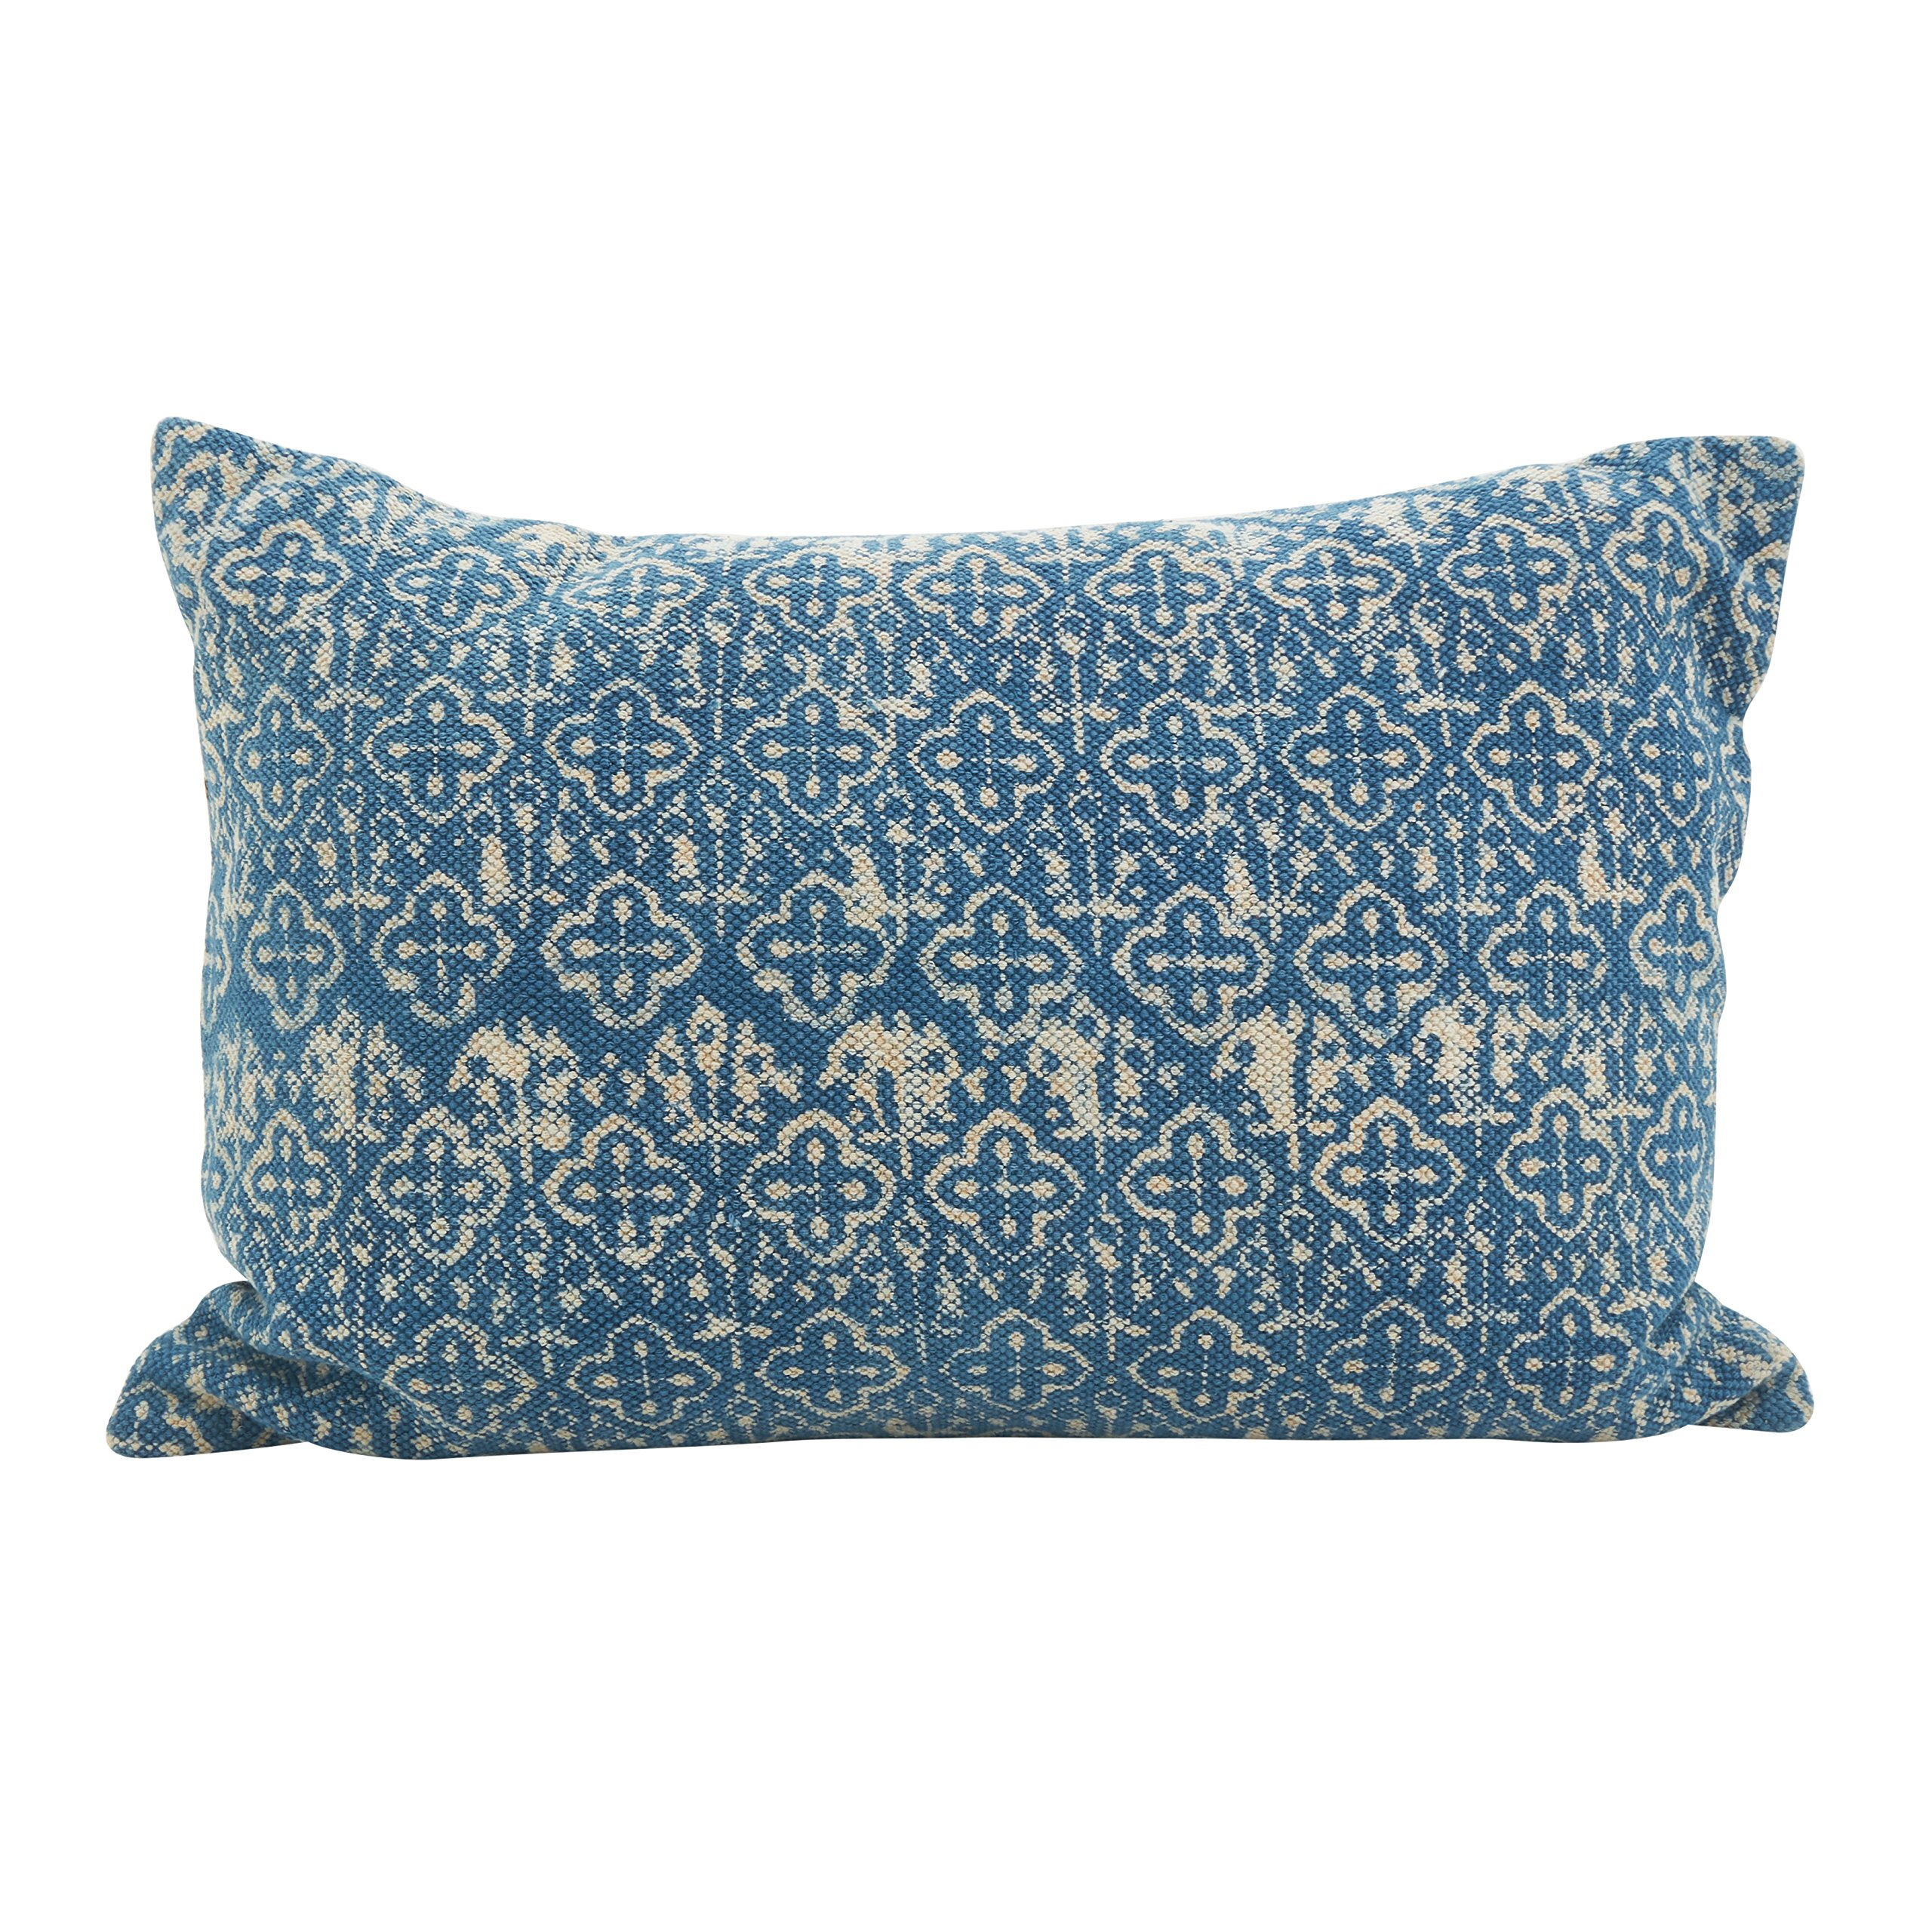 SARO LIFESTYLE Moravia Collection Distressed Design Throw Pillow/8410.IN1624B, 16'' x 24'', Oblong